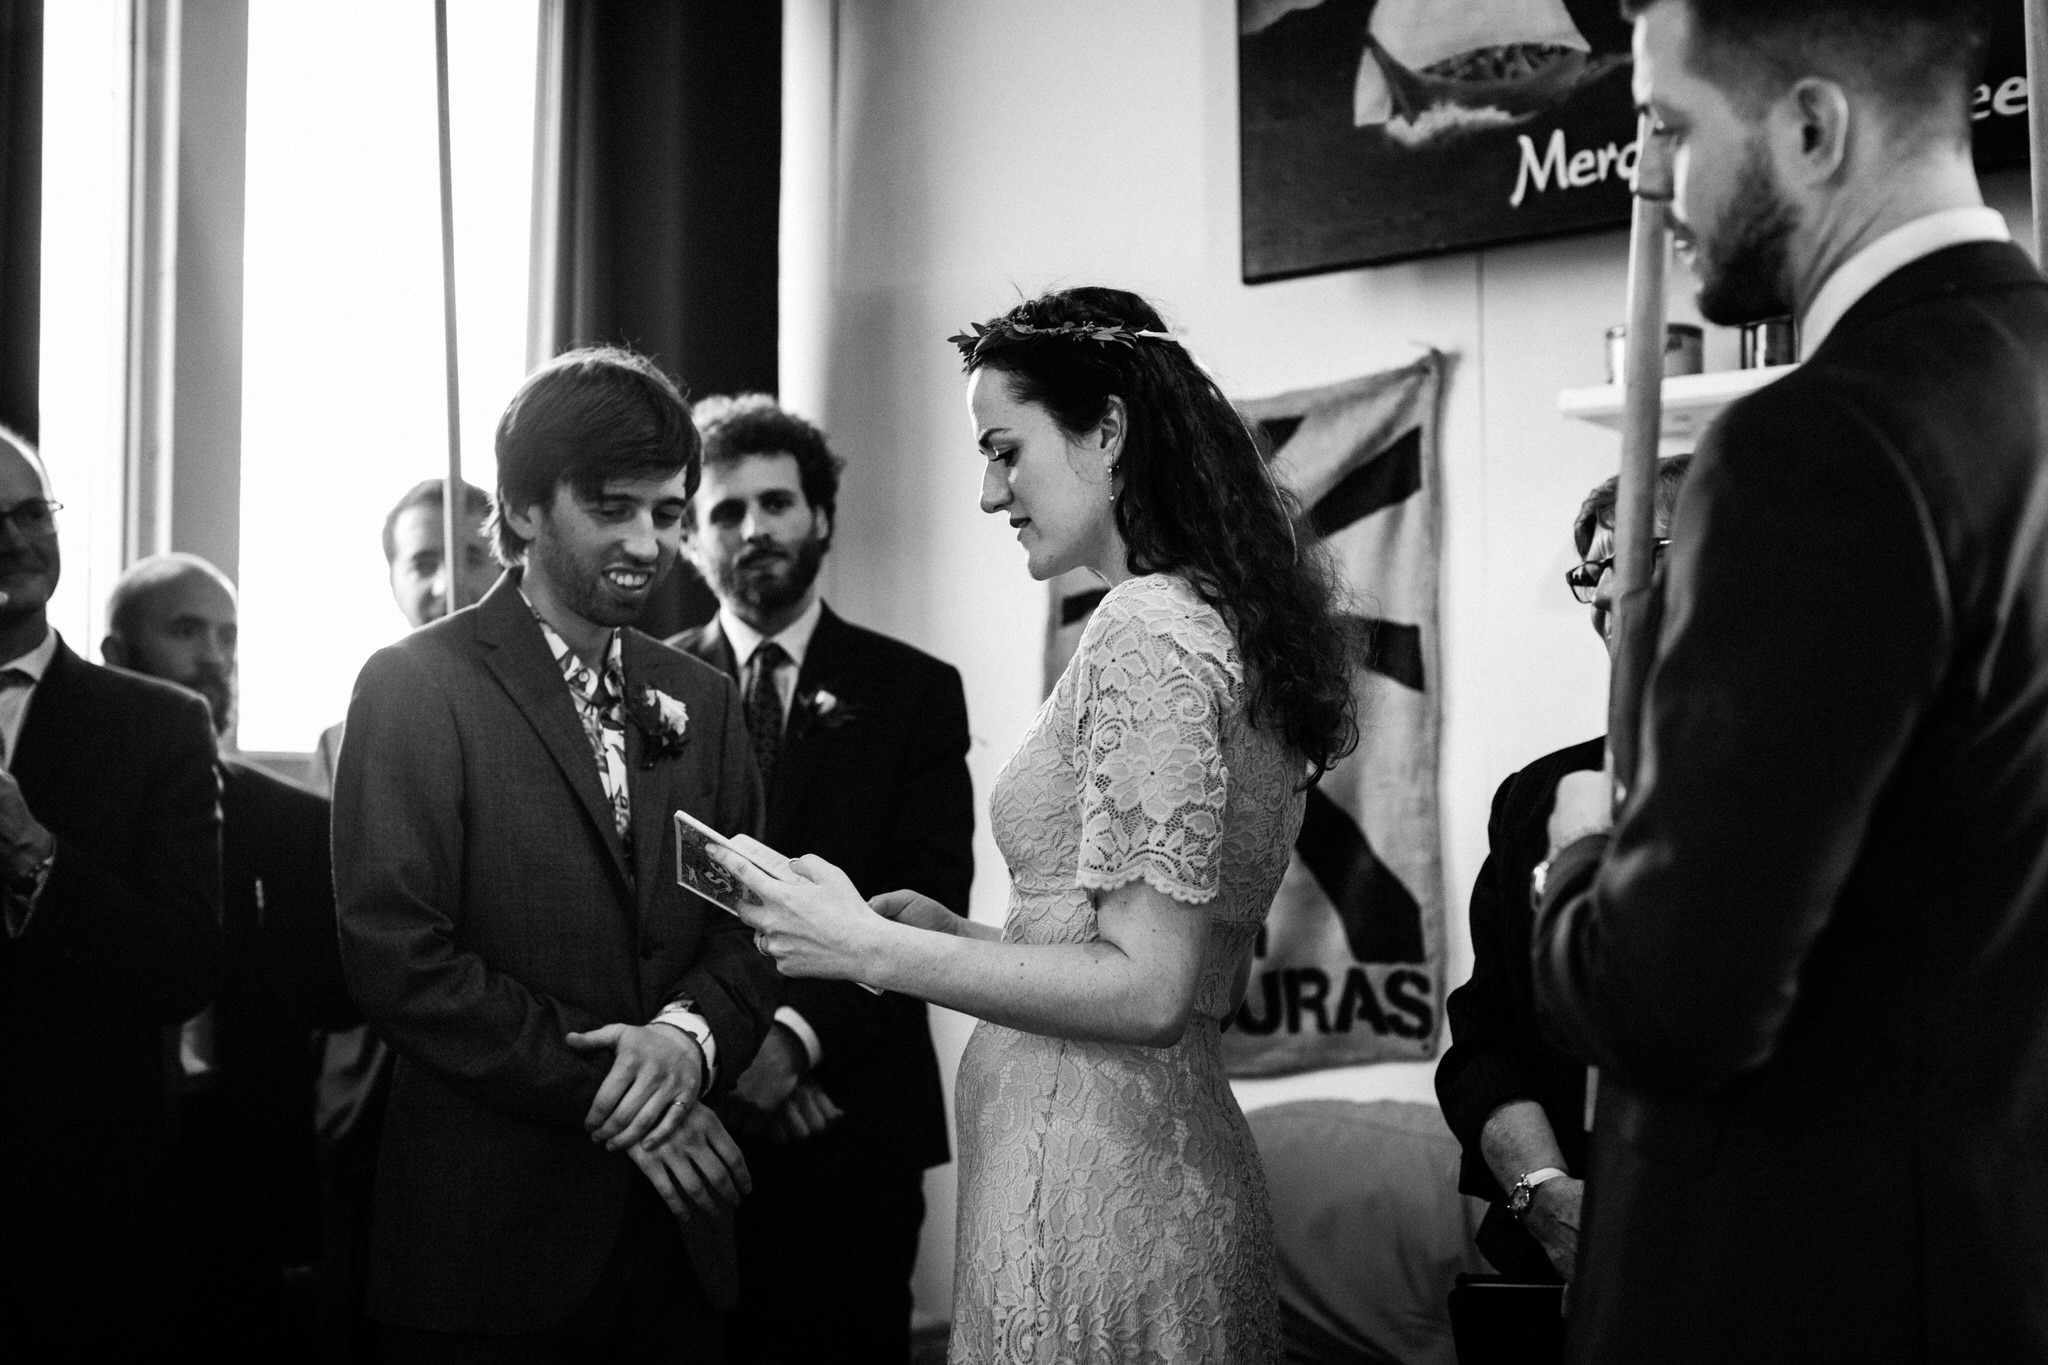 Merchants of Green Coffee Wedding - exchanging vows